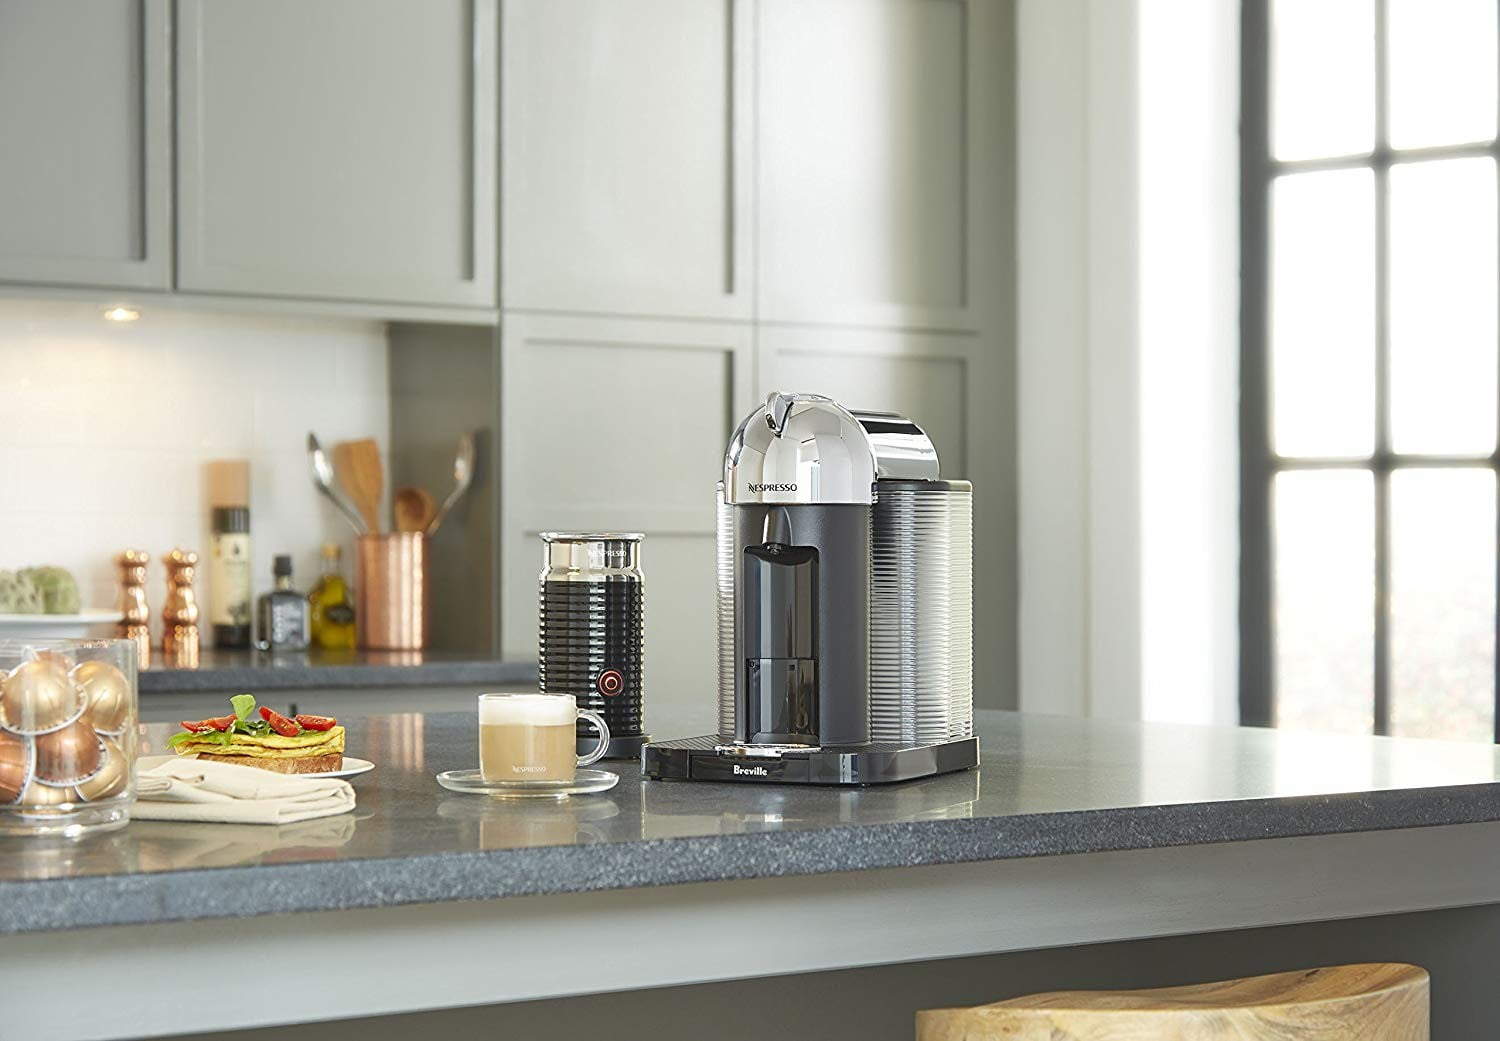 Amazon sweetens up this Breville Nespresso machine bundle with a $105 discount